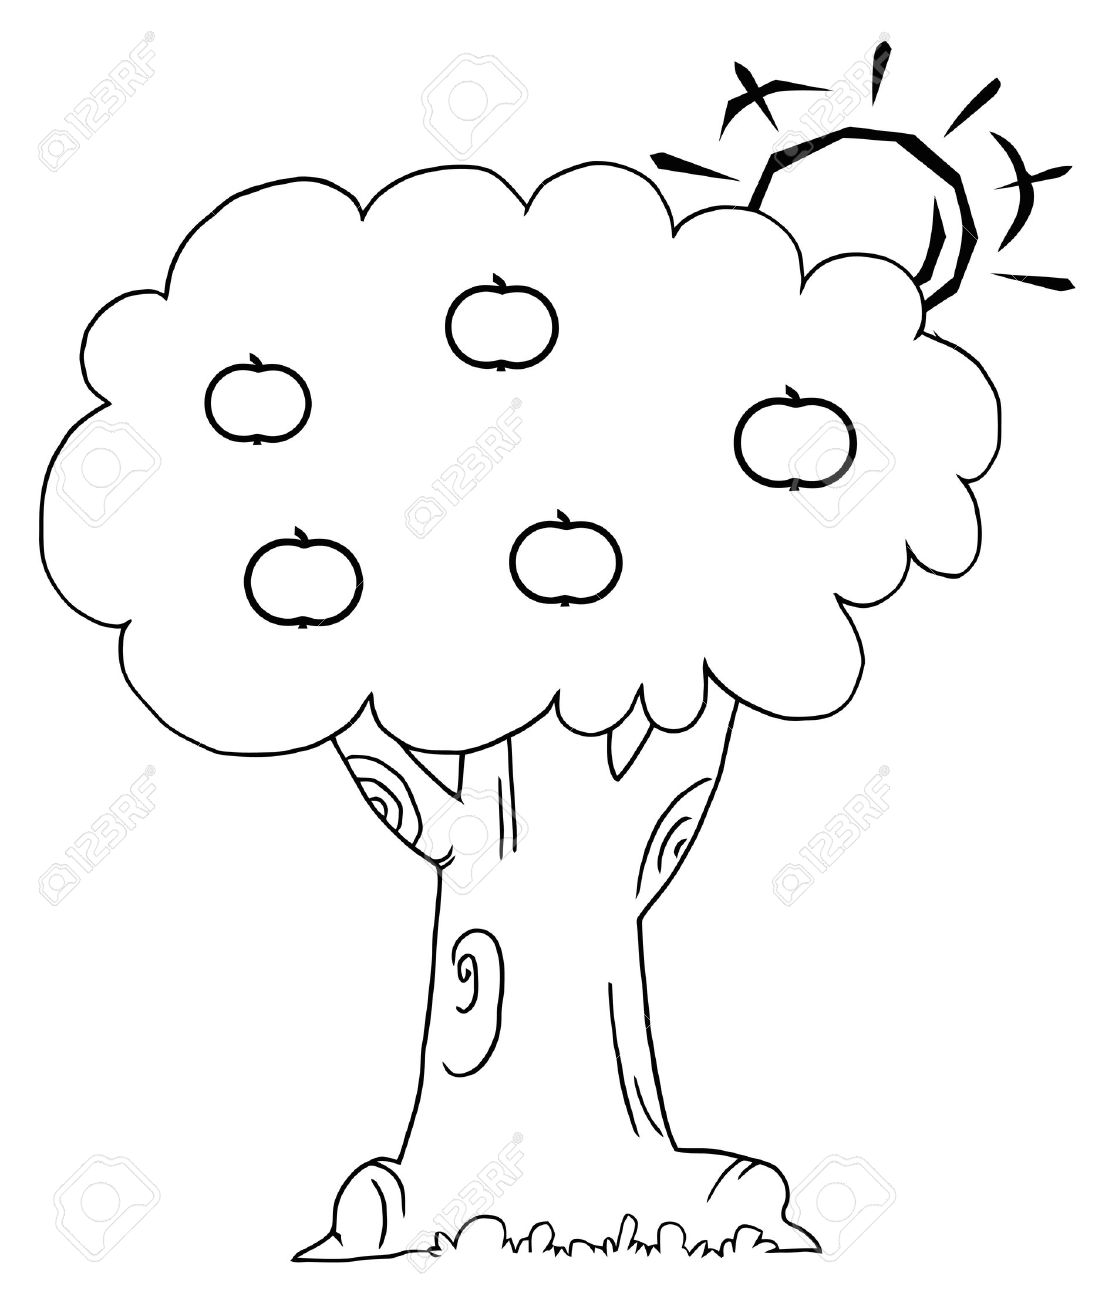 Coloring book page apple tree - Outline Of The Sun Behind An Apple Tree Stock Vector 16511994